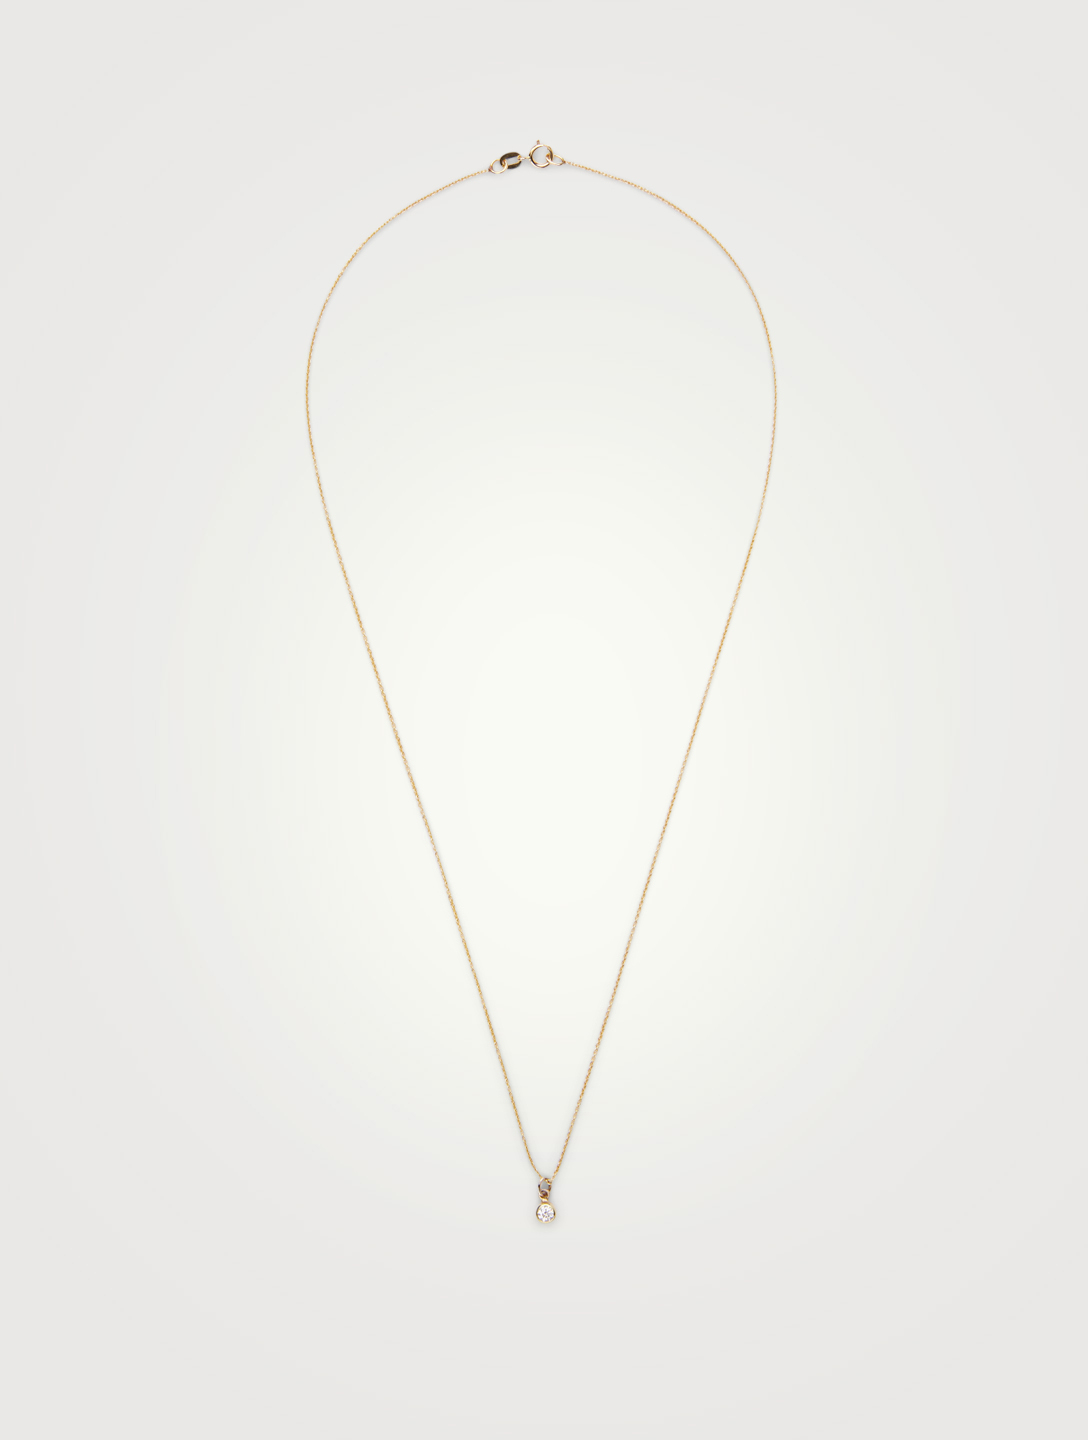 JENNIFER MEYER Gold Single Bezel Diamond Necklace Women's Gold